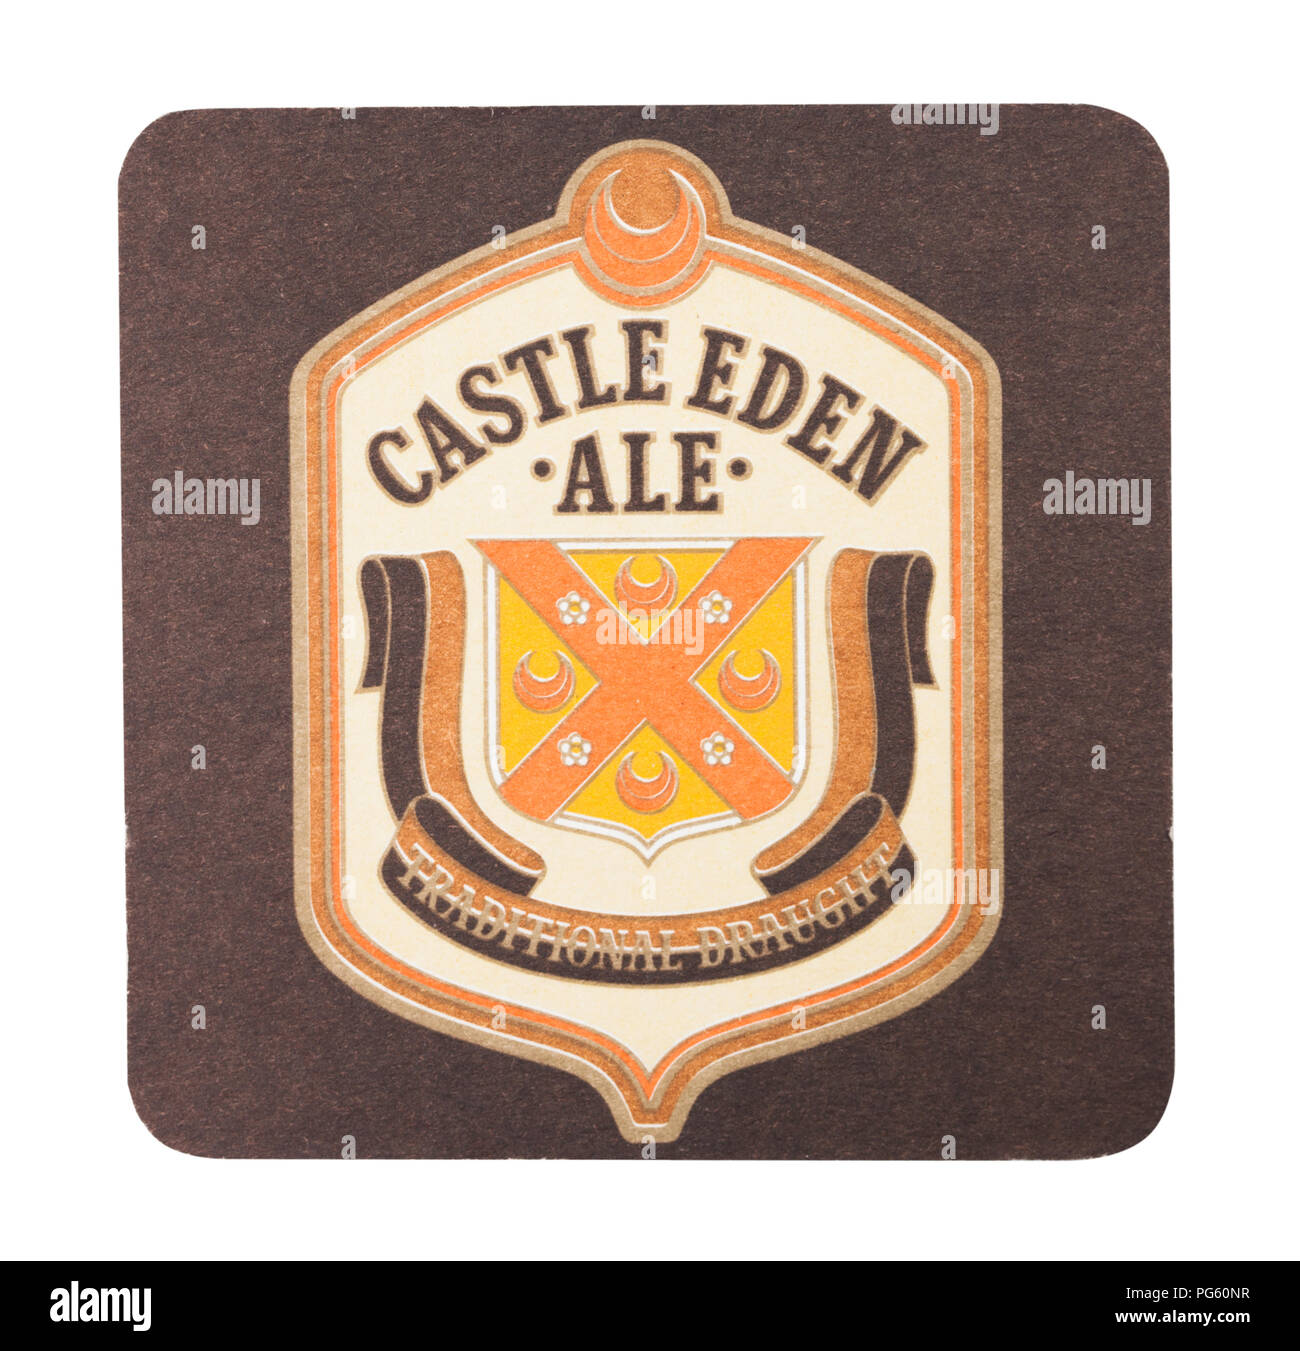 LONDON, UK - AUGUST 22, 2018: Castle Eden Ale paper beer beermat coaster isolated on white background. - Stock Image